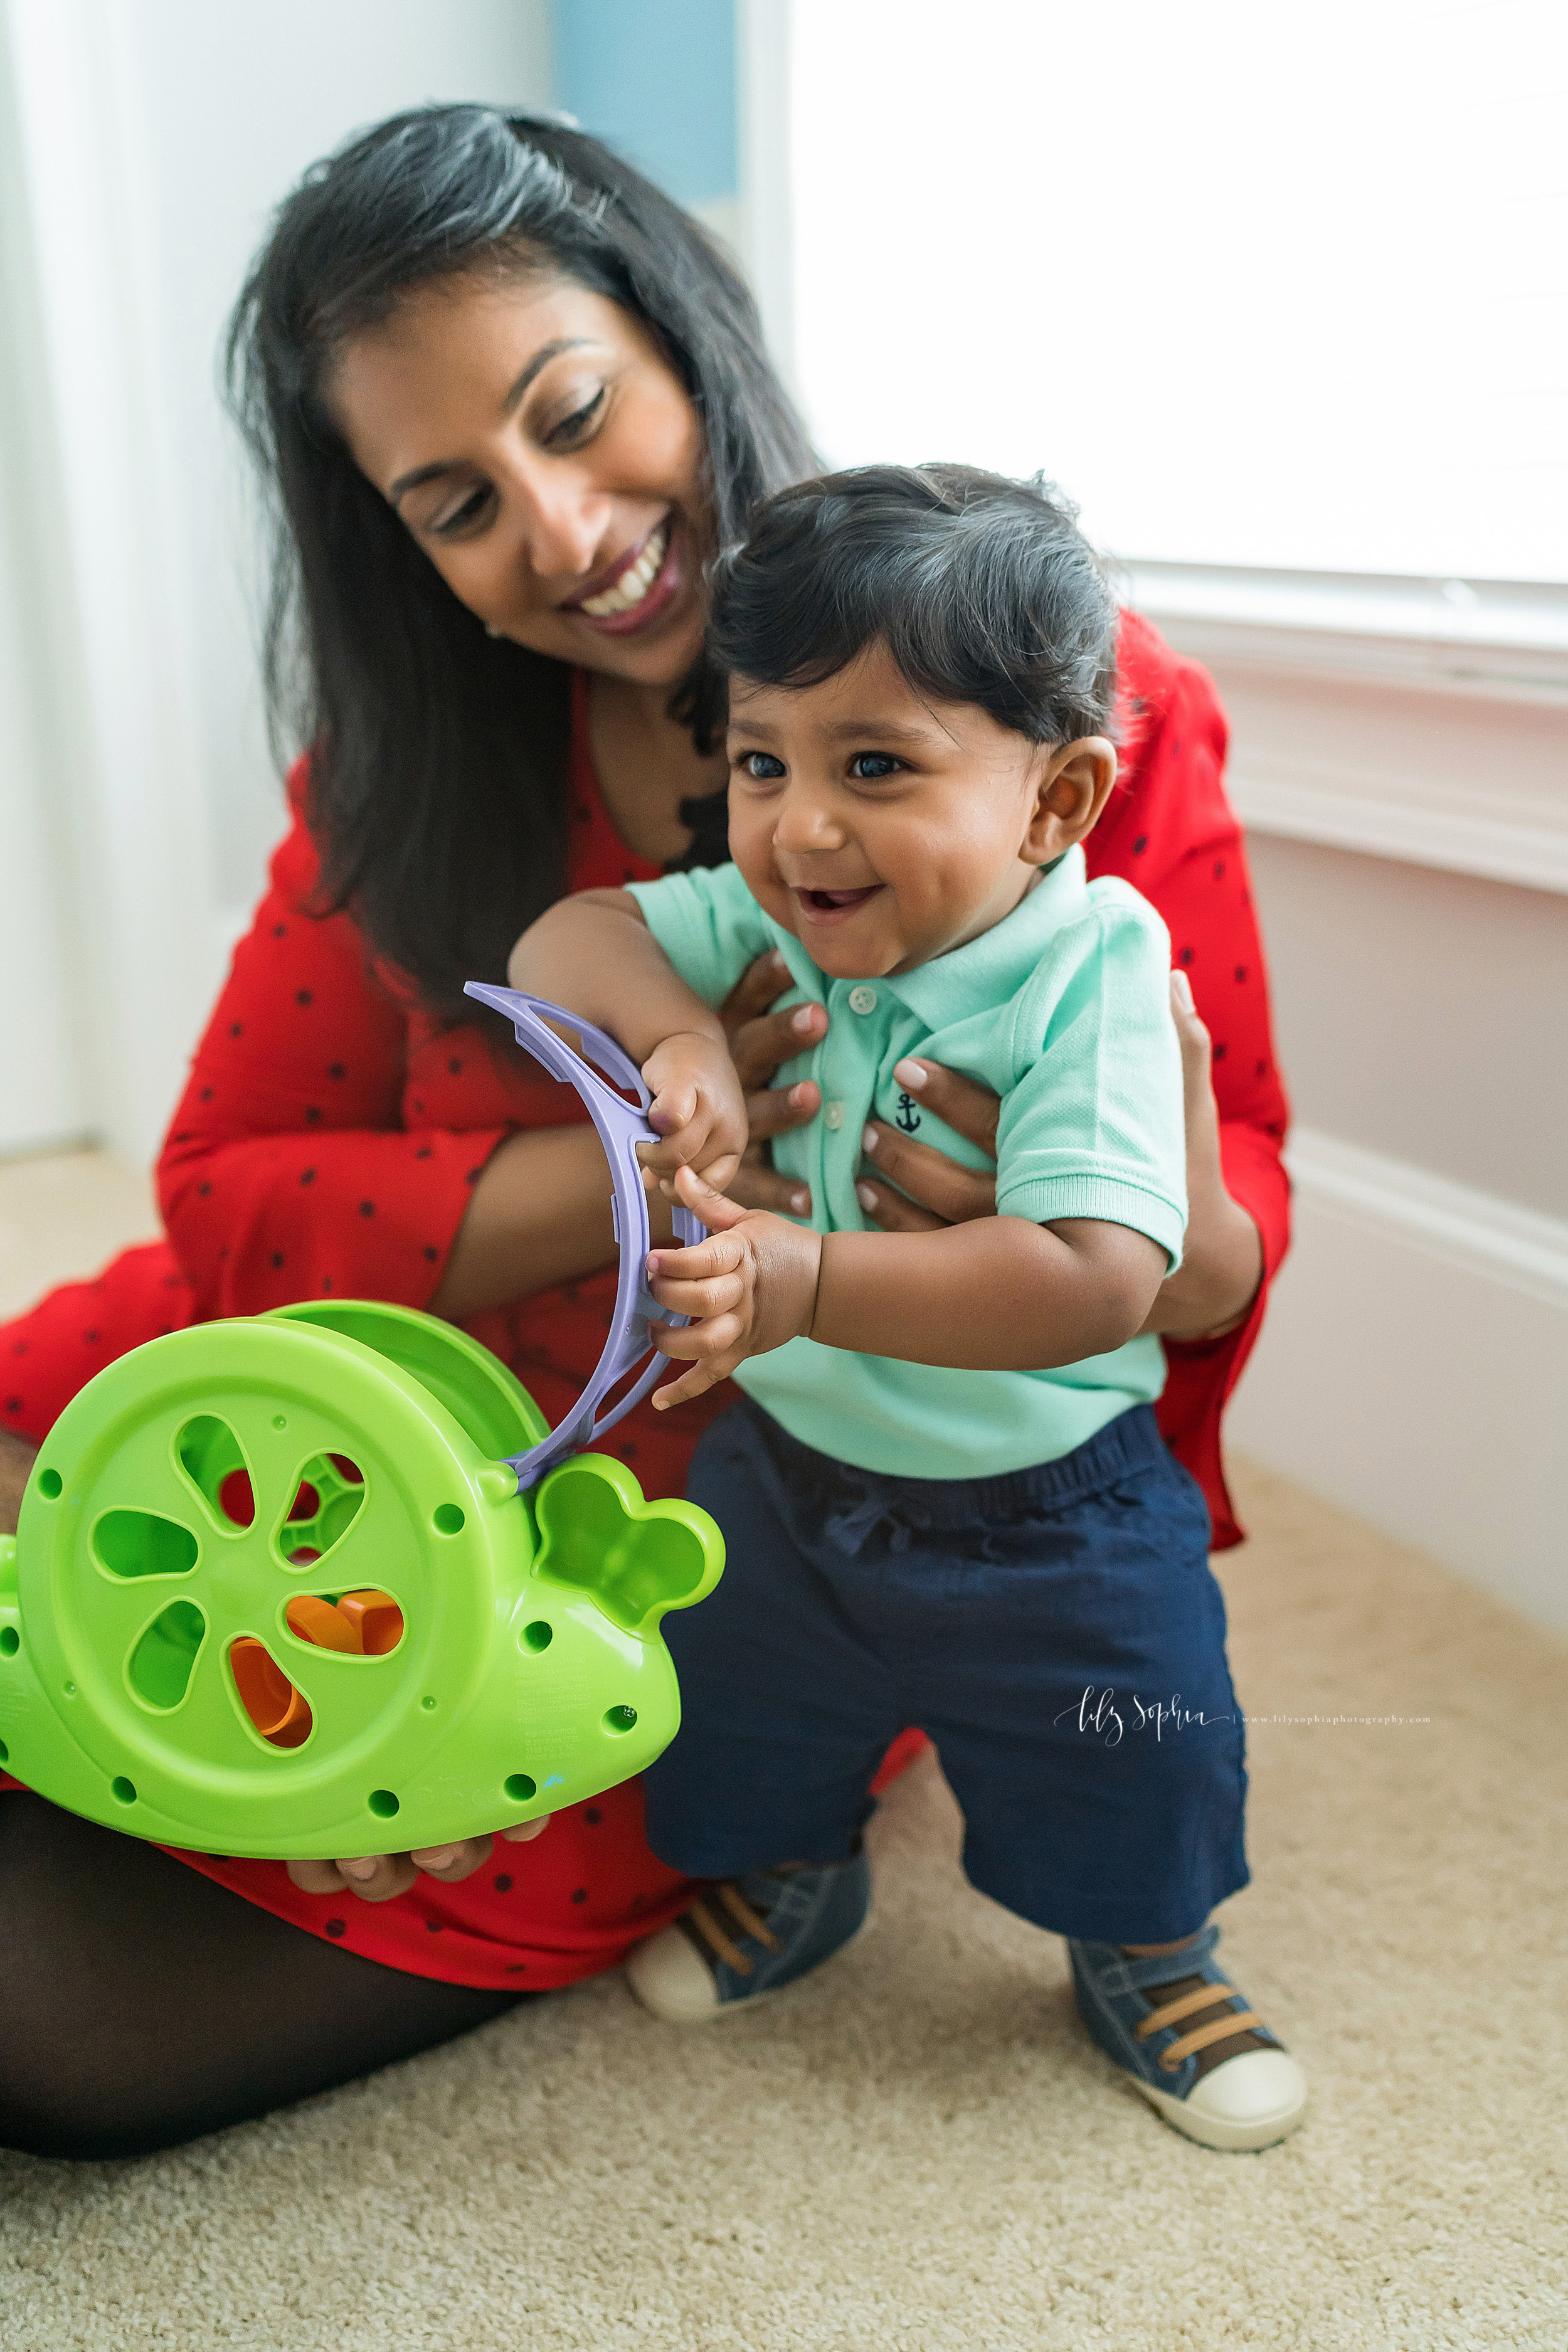 atlanta-brookhaven-east-cobb-marietta-candler-park-sandy-springs-buckhead-virginia-highlands-west-end-decatur-lily-sophia-photography-in-home-lifestyle-session-eight-month-milestone-indian-family_1661.jpg